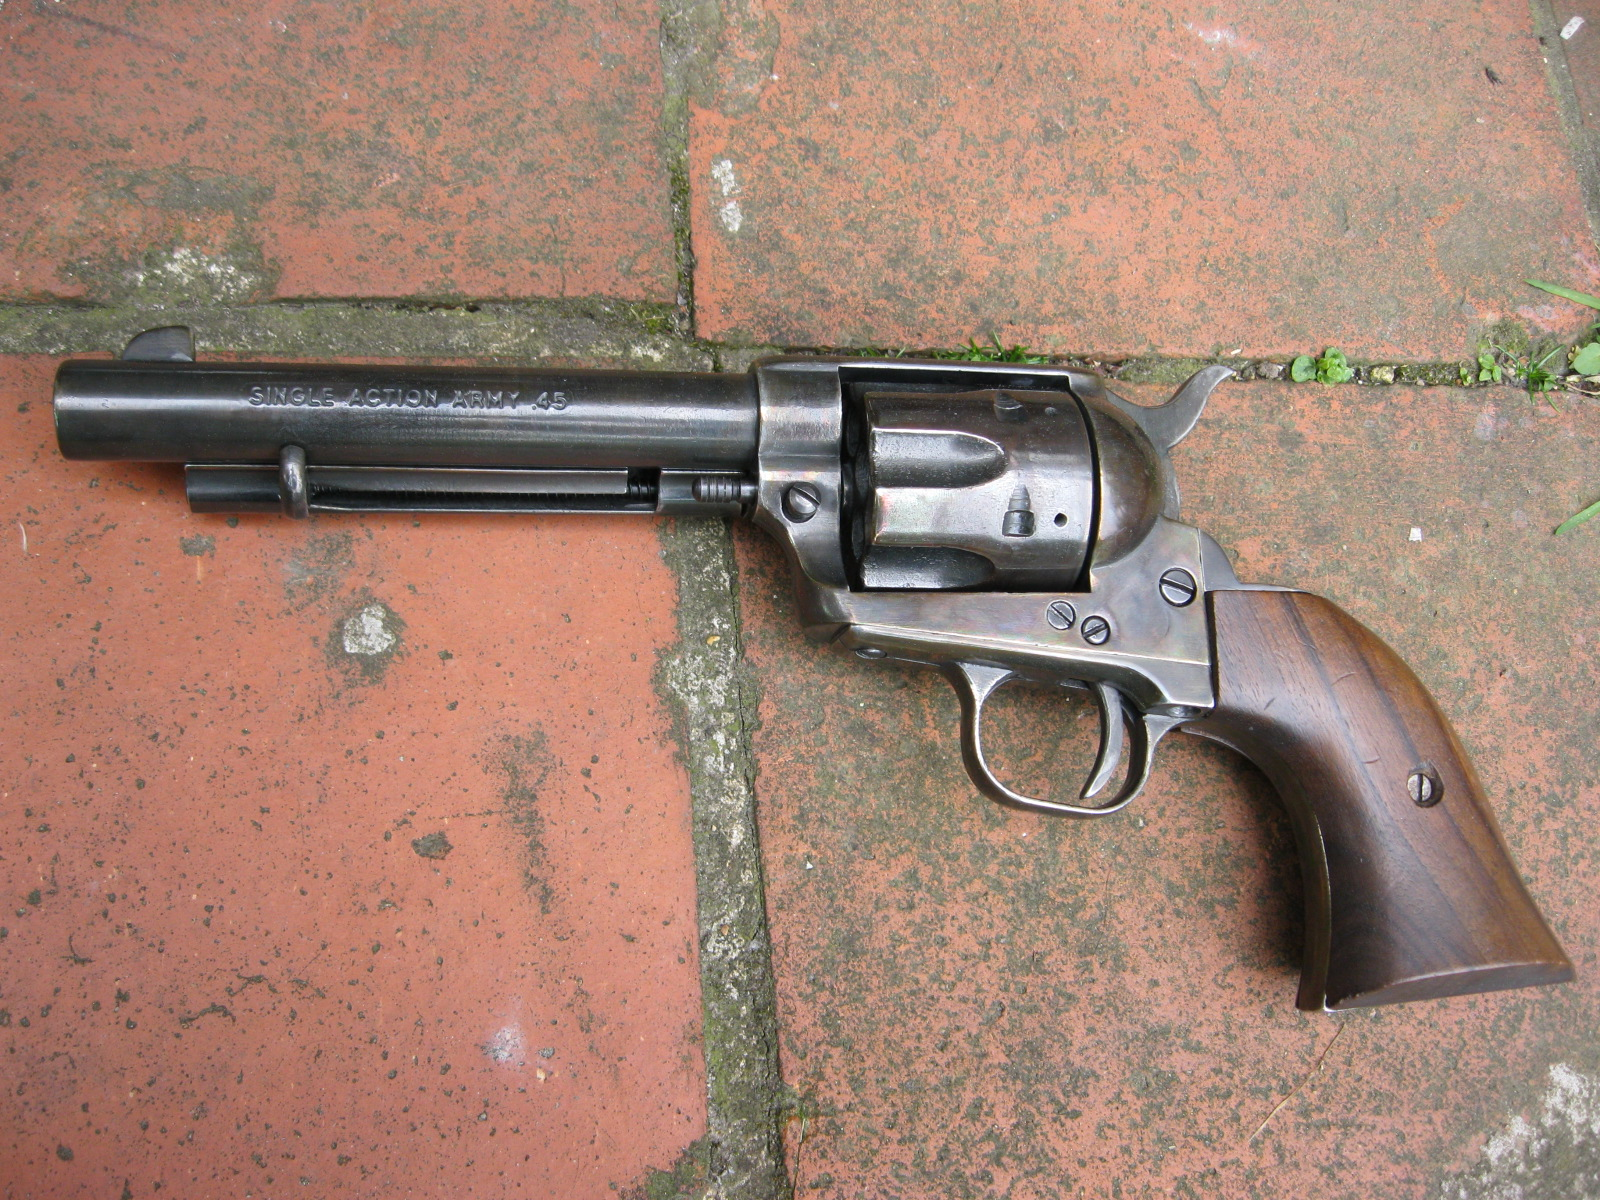 Sussex armoury Artillery .22 Blank Colt SAA